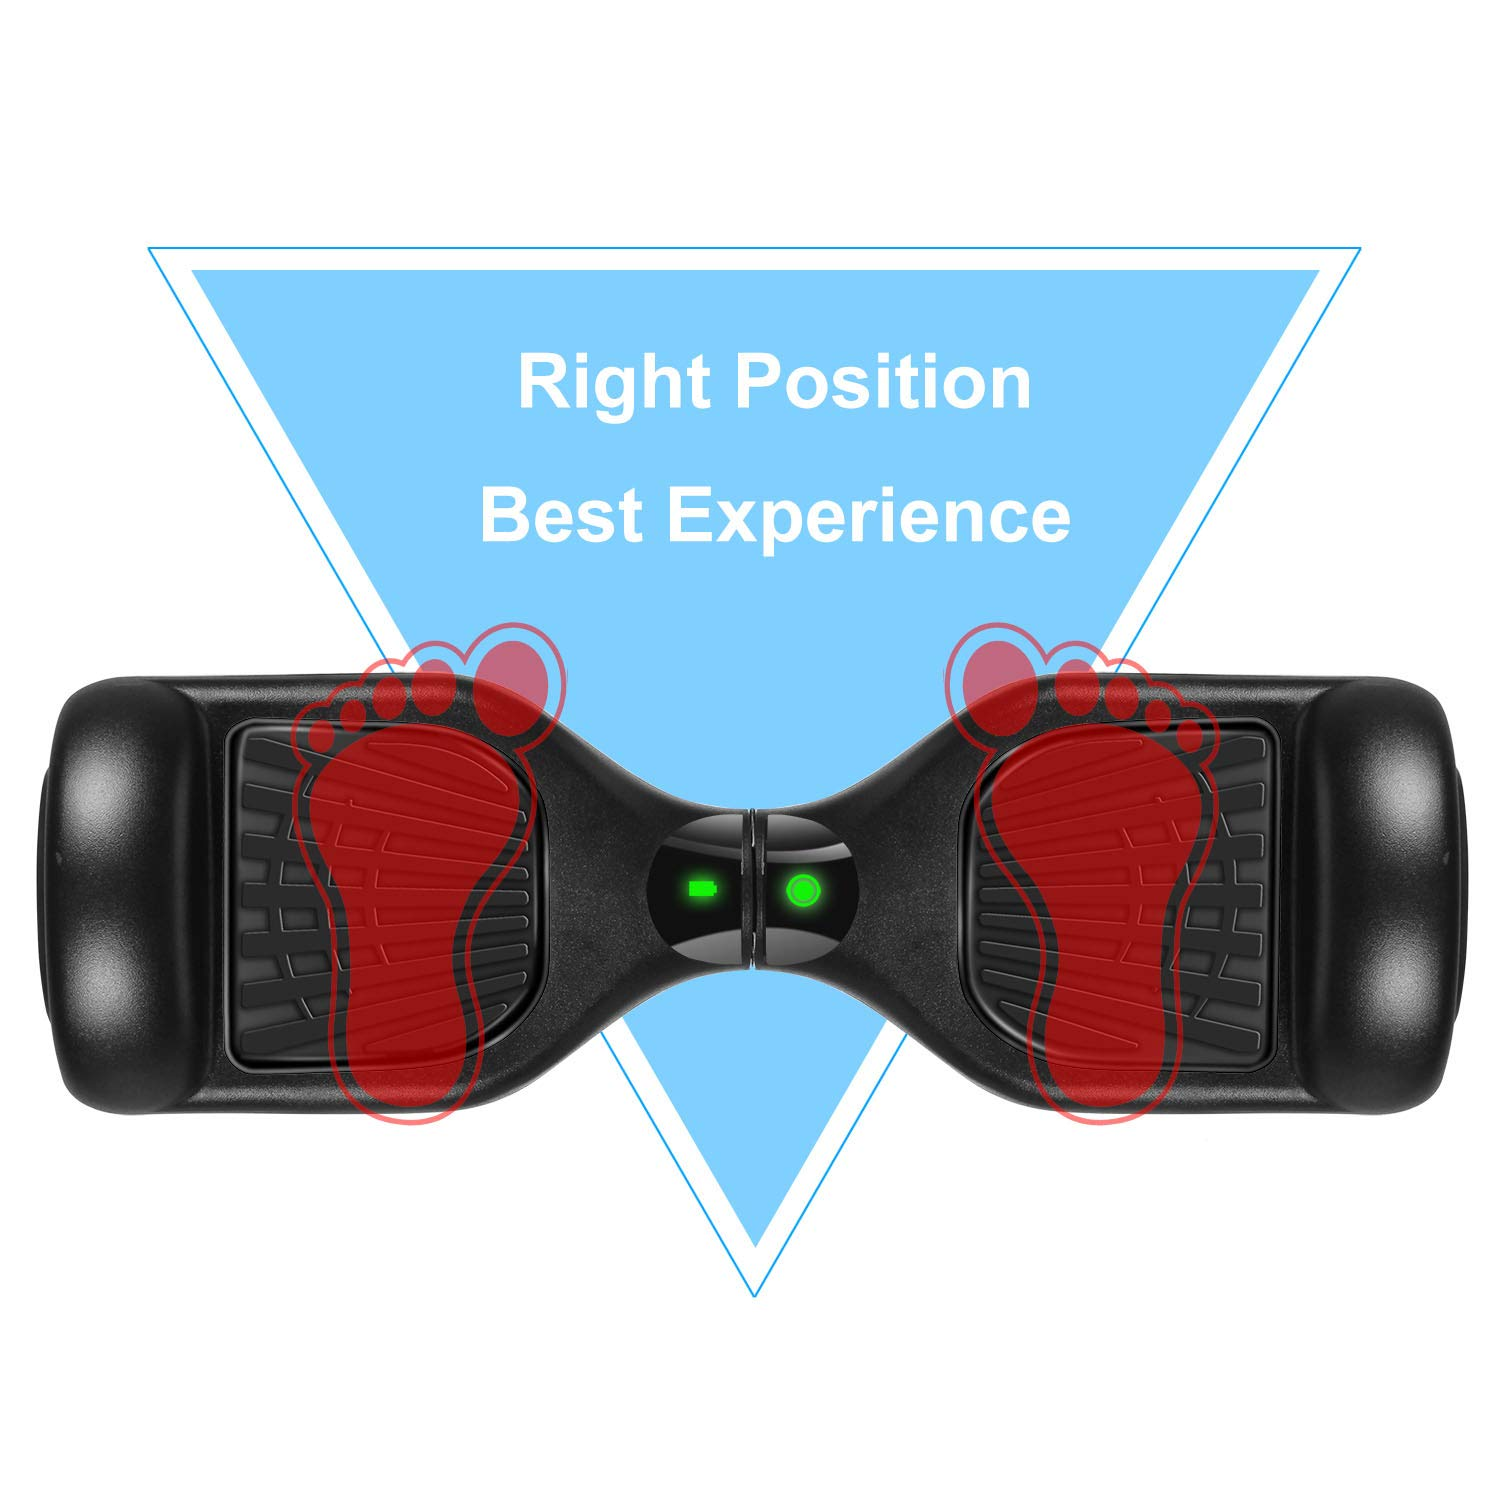 SWEETBUY Hoverboards UL Certified 6.5 Smart Scooter Two-Wheel self Balancing Electric Scooter Light Free Bag and Charger Included by SWEETBUY (Image #6)